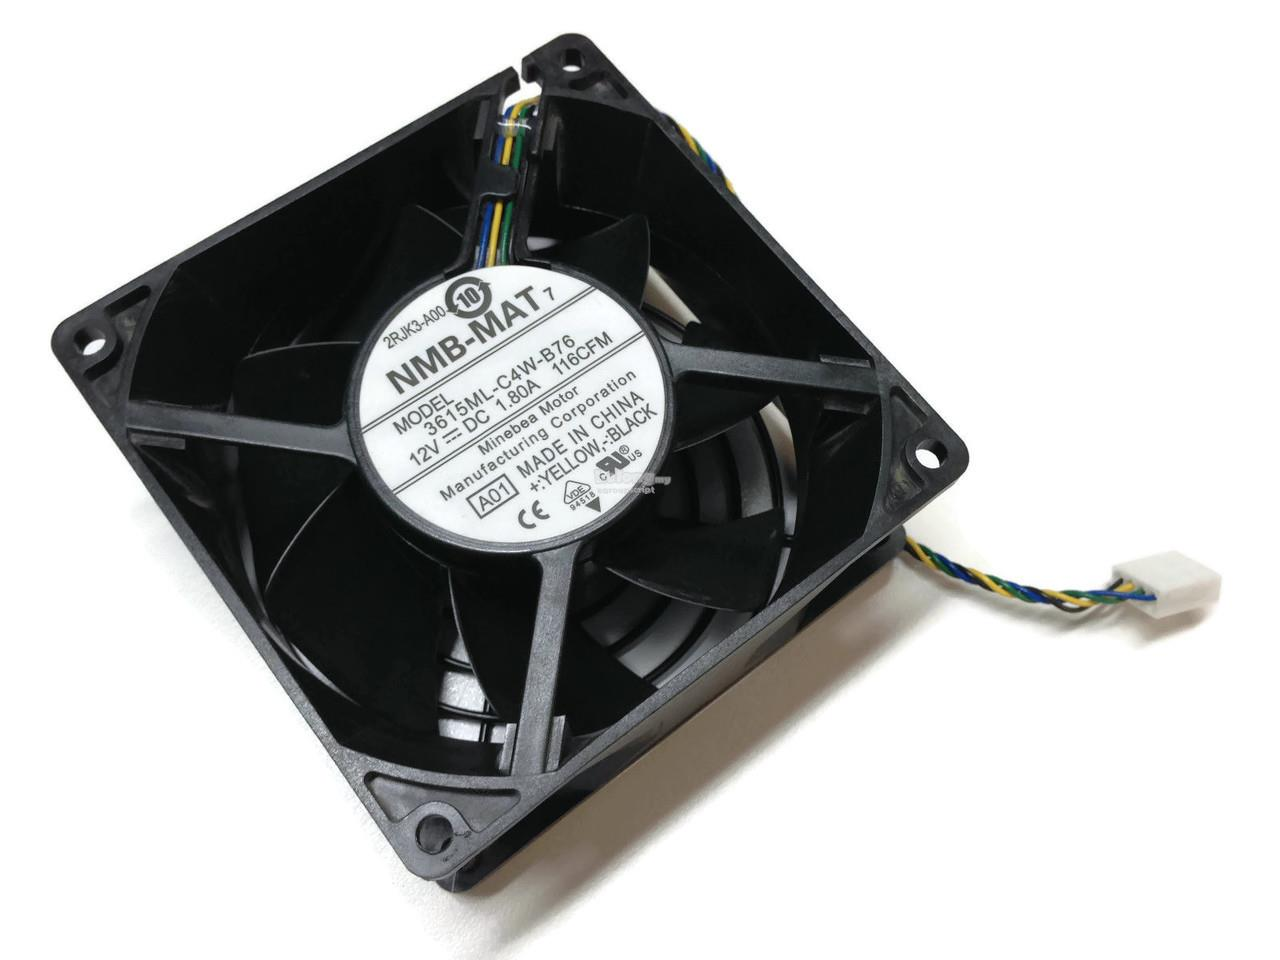 Dell PowerEdge T610 Server Fan Assembly GY676